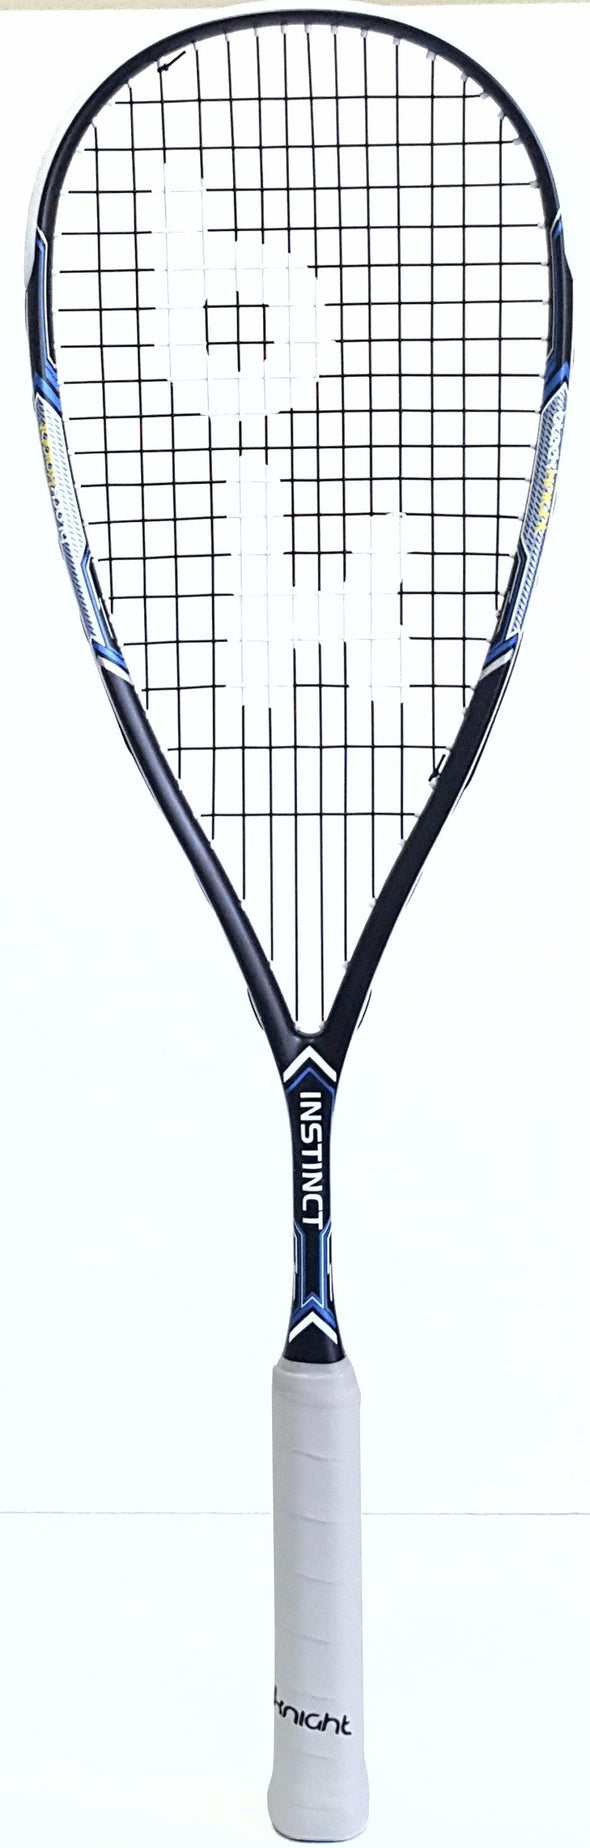 Black Knight Instinct Squash Racket